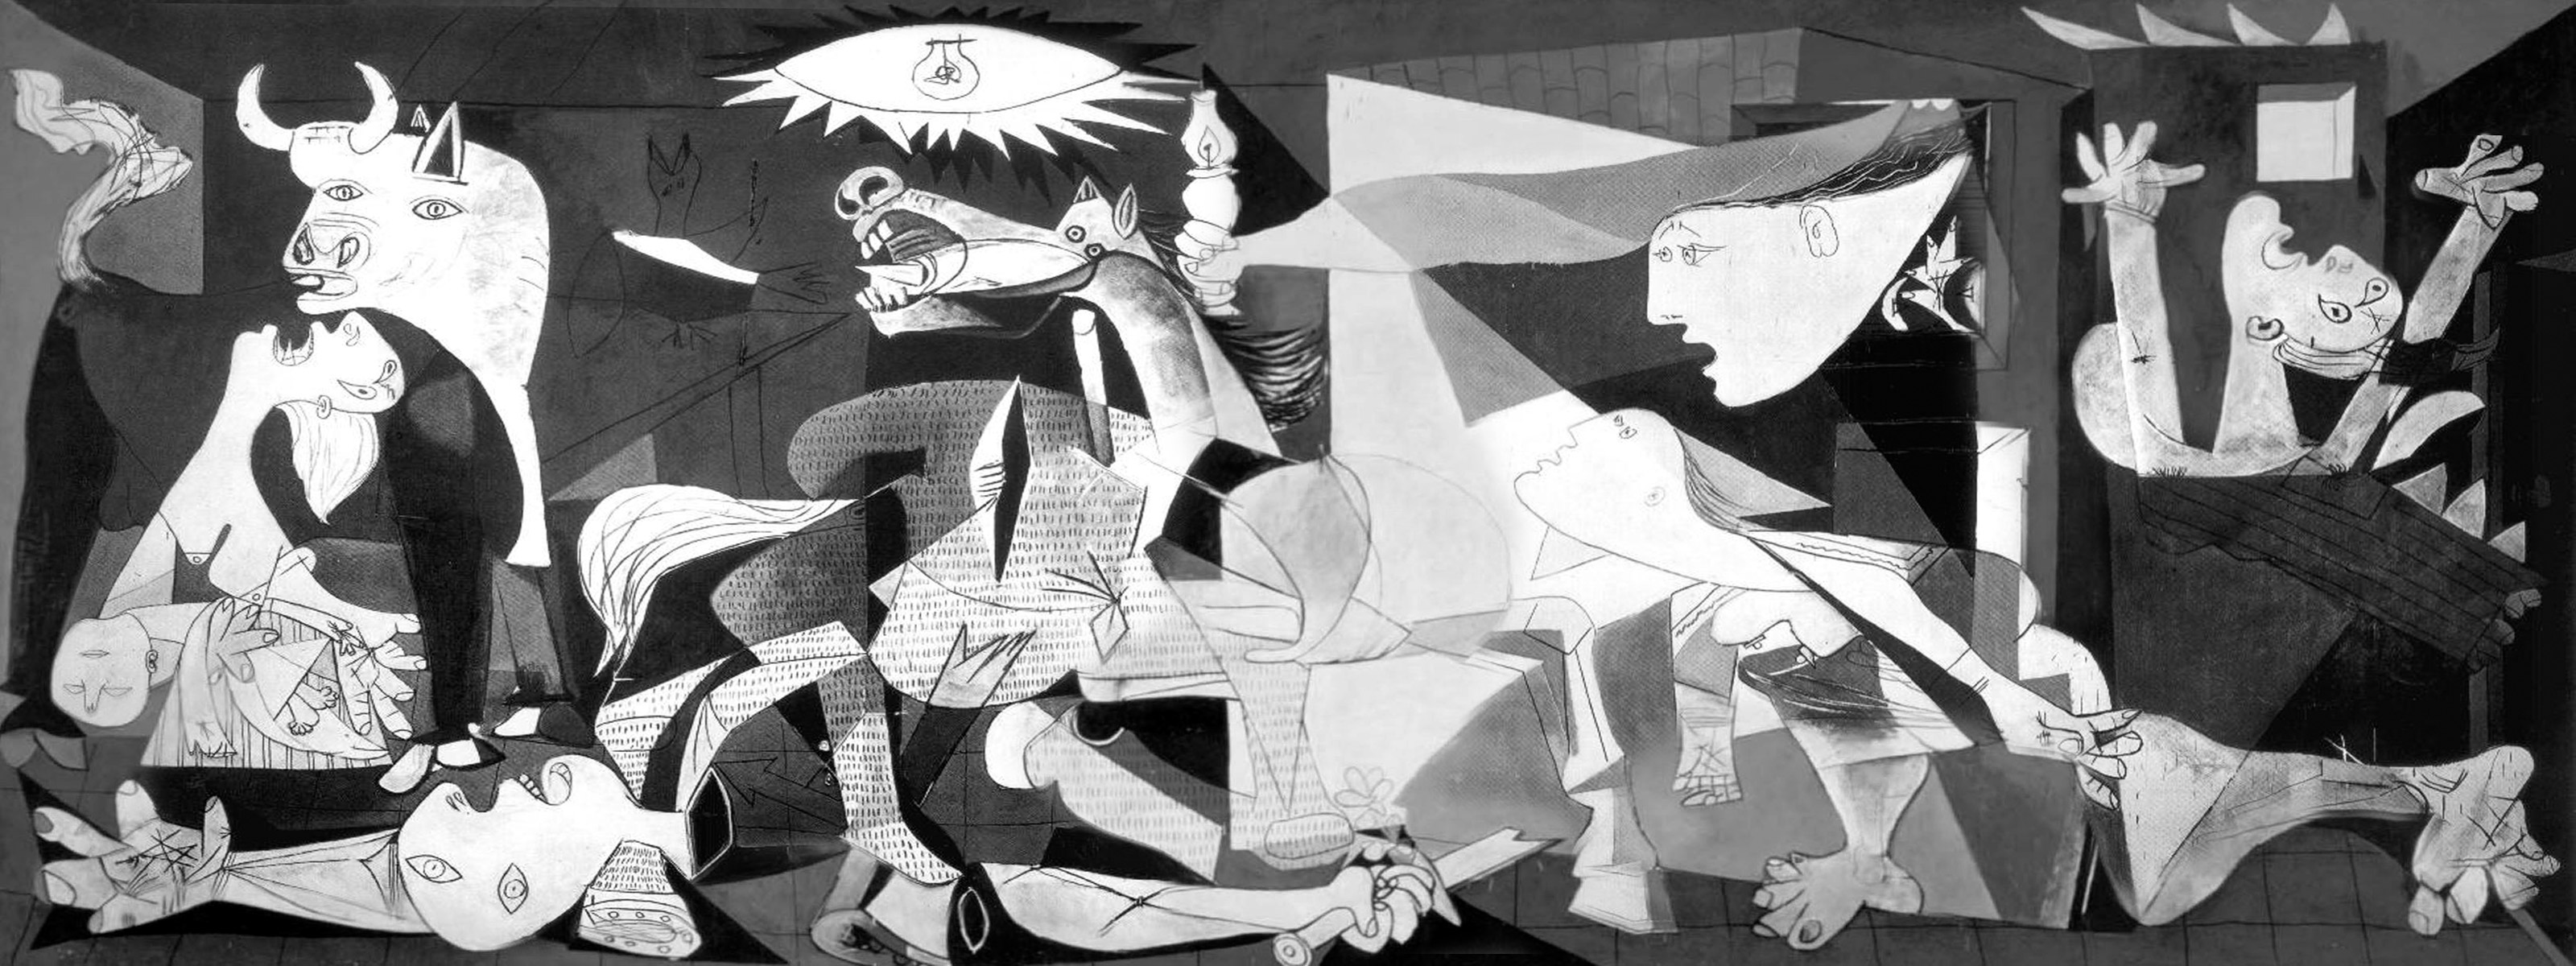 Artwork Analysis: Guernica by Picasso